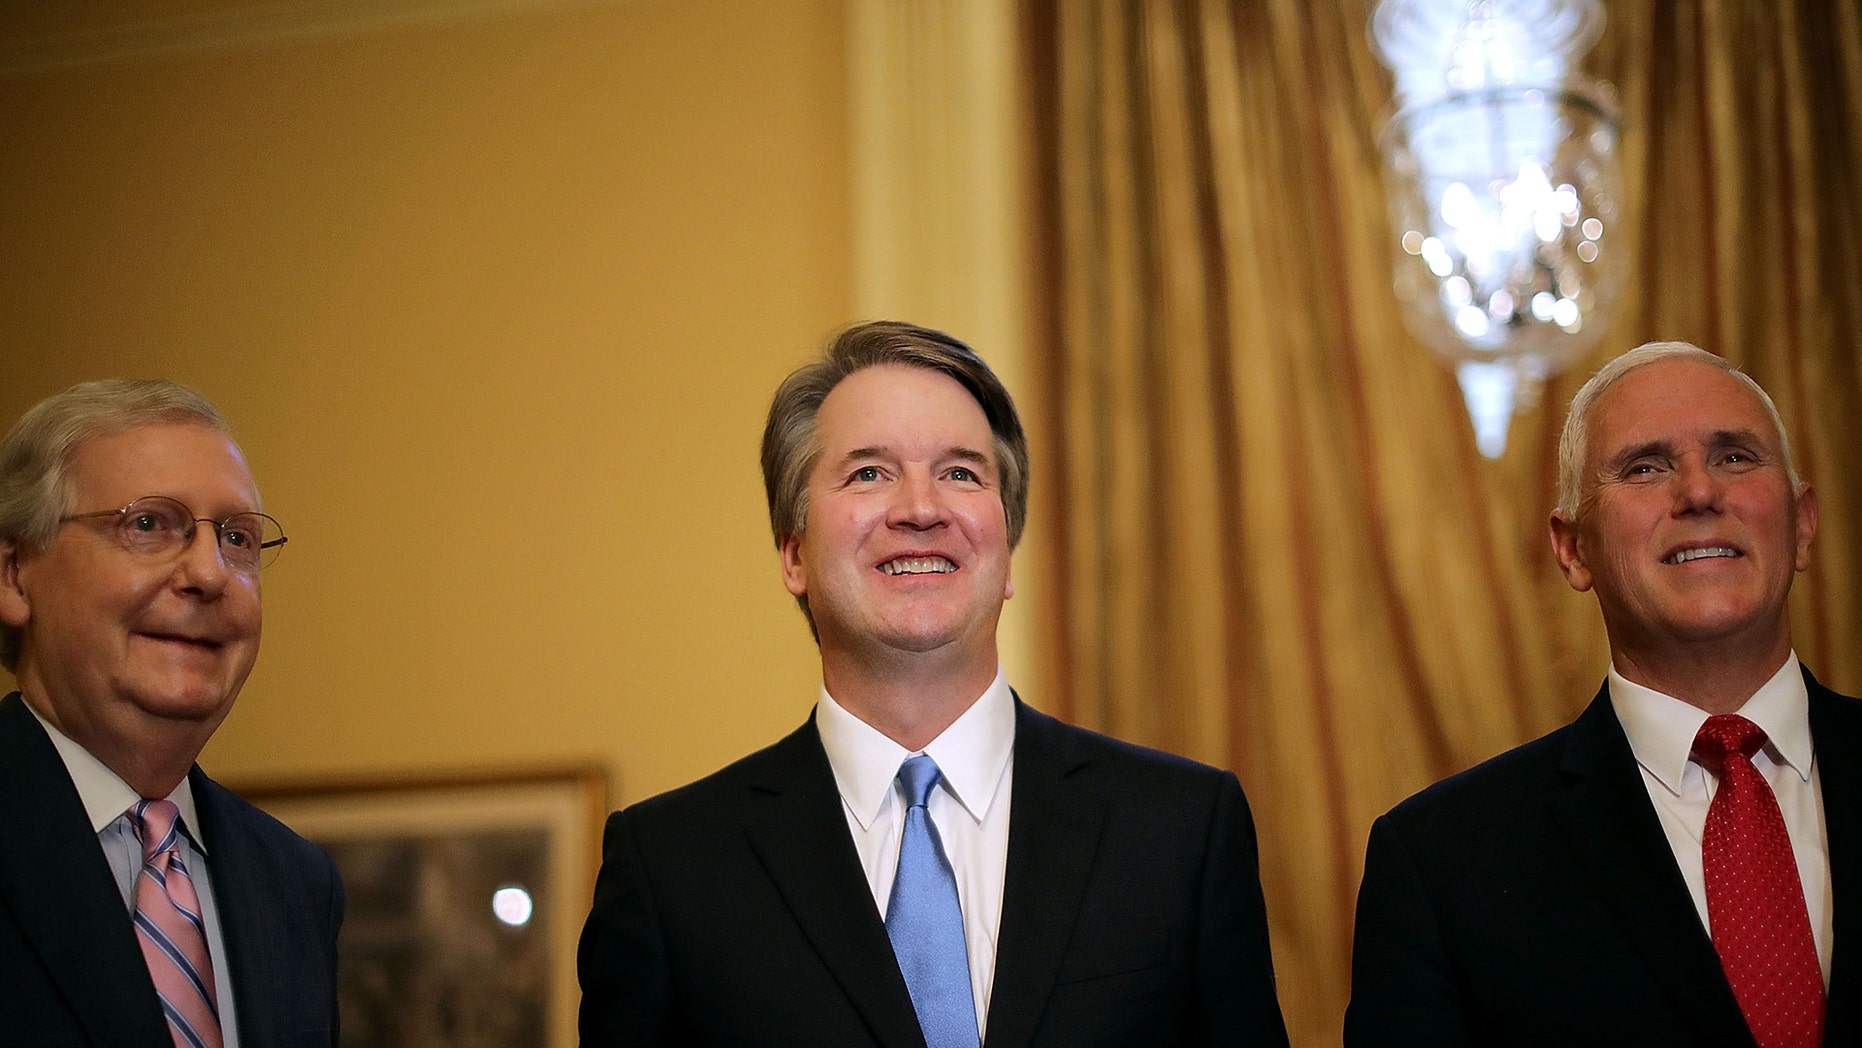 WASHINGTON, DC - JULY 10: (L-R) Senate Majority Leader Mitch McConnell (R-KY), Judge Brett Kavanaugh and Vice President Mike Pence pose for photographs before a meeting in McConnell's office in the U.S. Capitol July 10, 2018 in Washington, DC. U.S. President Donald Trump nominated Kavanaugh to succeed retiring Supreme Court Associate Justice Anthony Kennedy. (Photo by Chip Somodevilla/Getty Images)